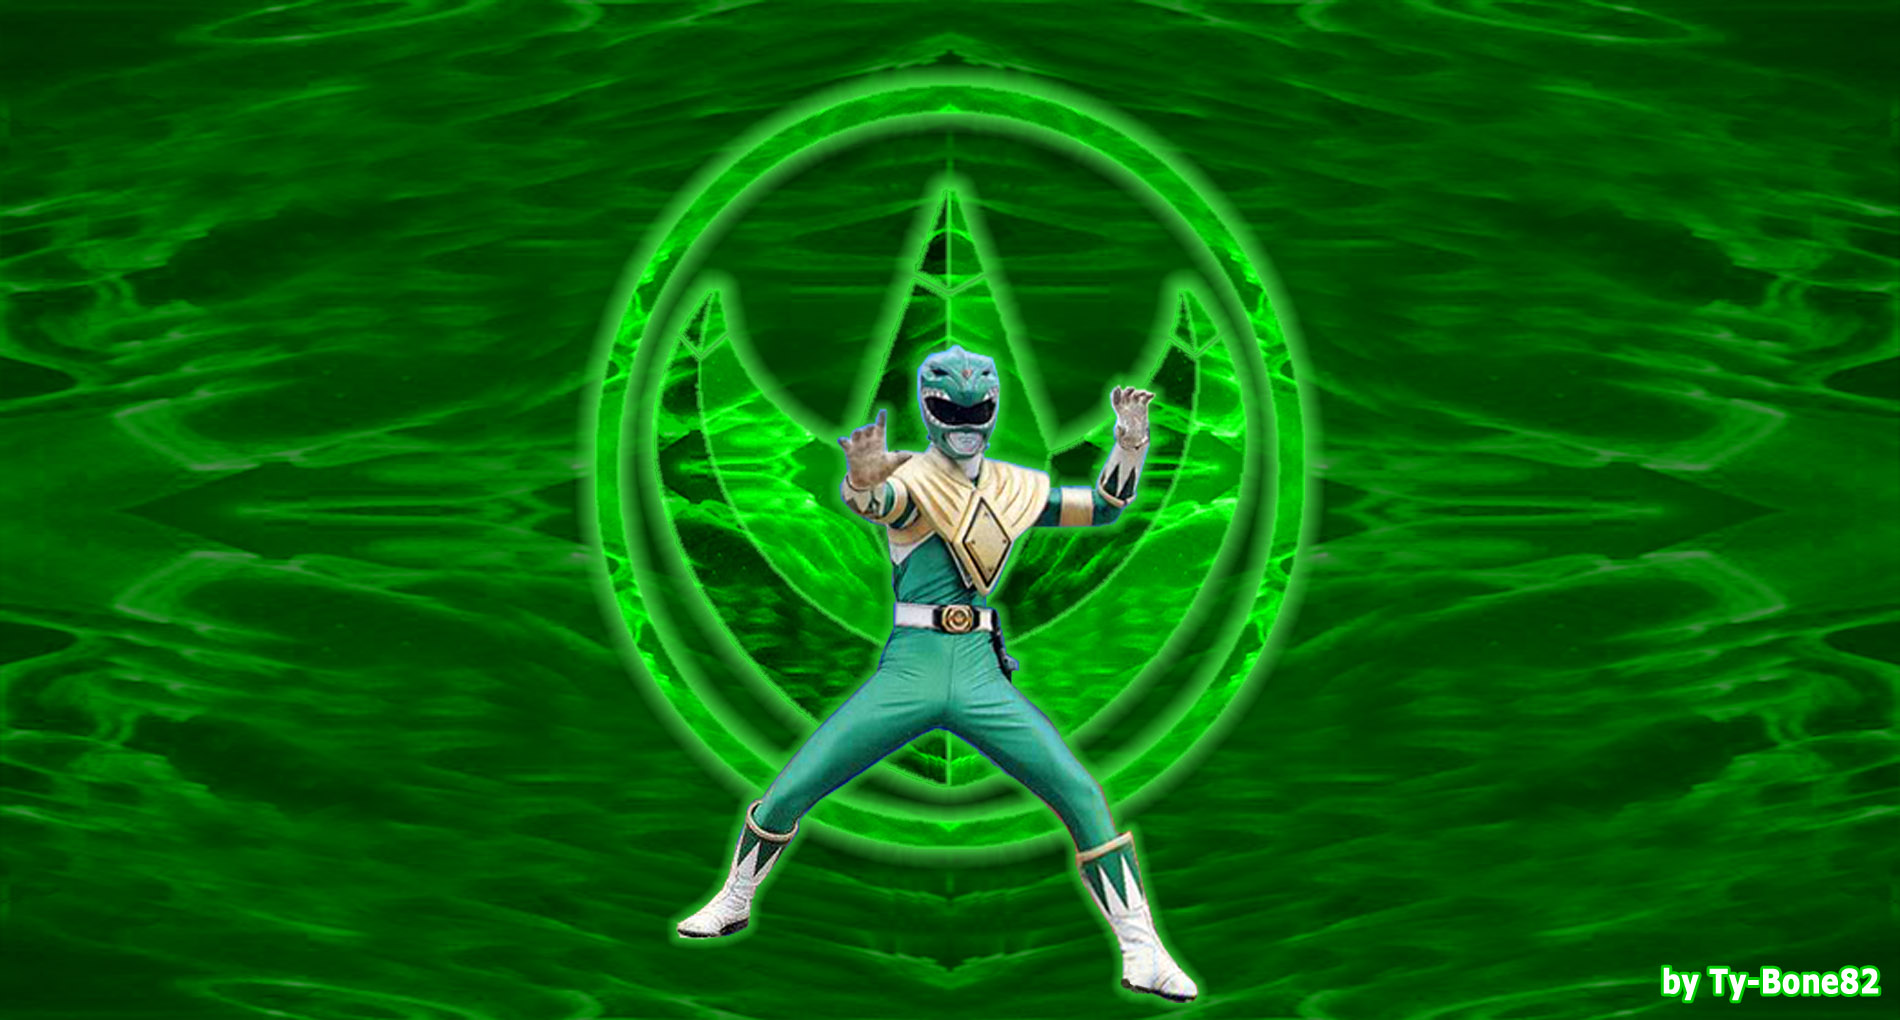 mighty morphin power rangers - green rangersuper-tybone82 on